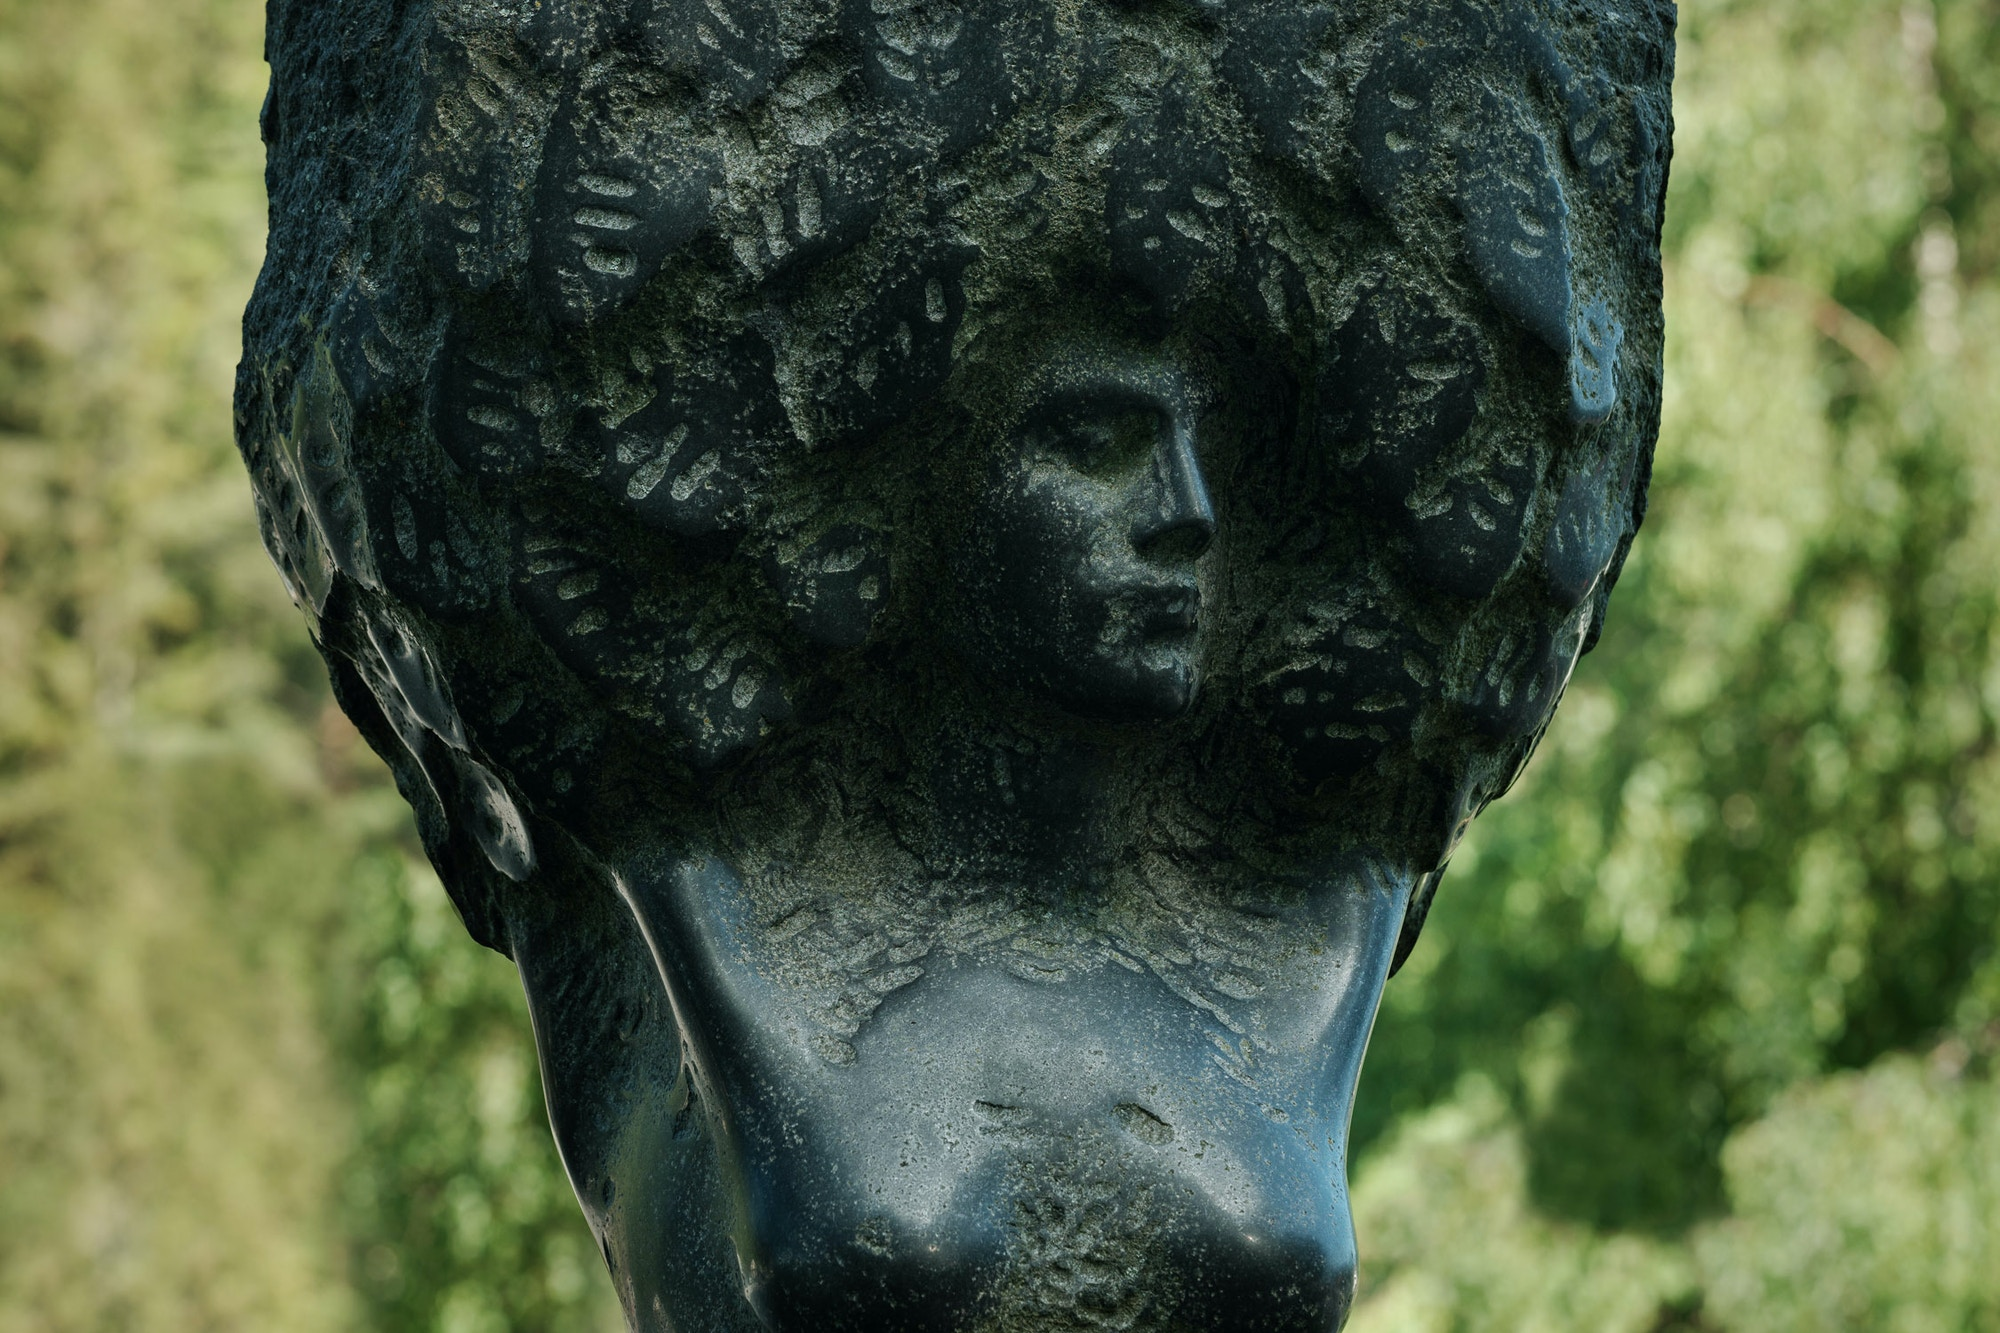 Statue of a woman. Torso. Big hair.